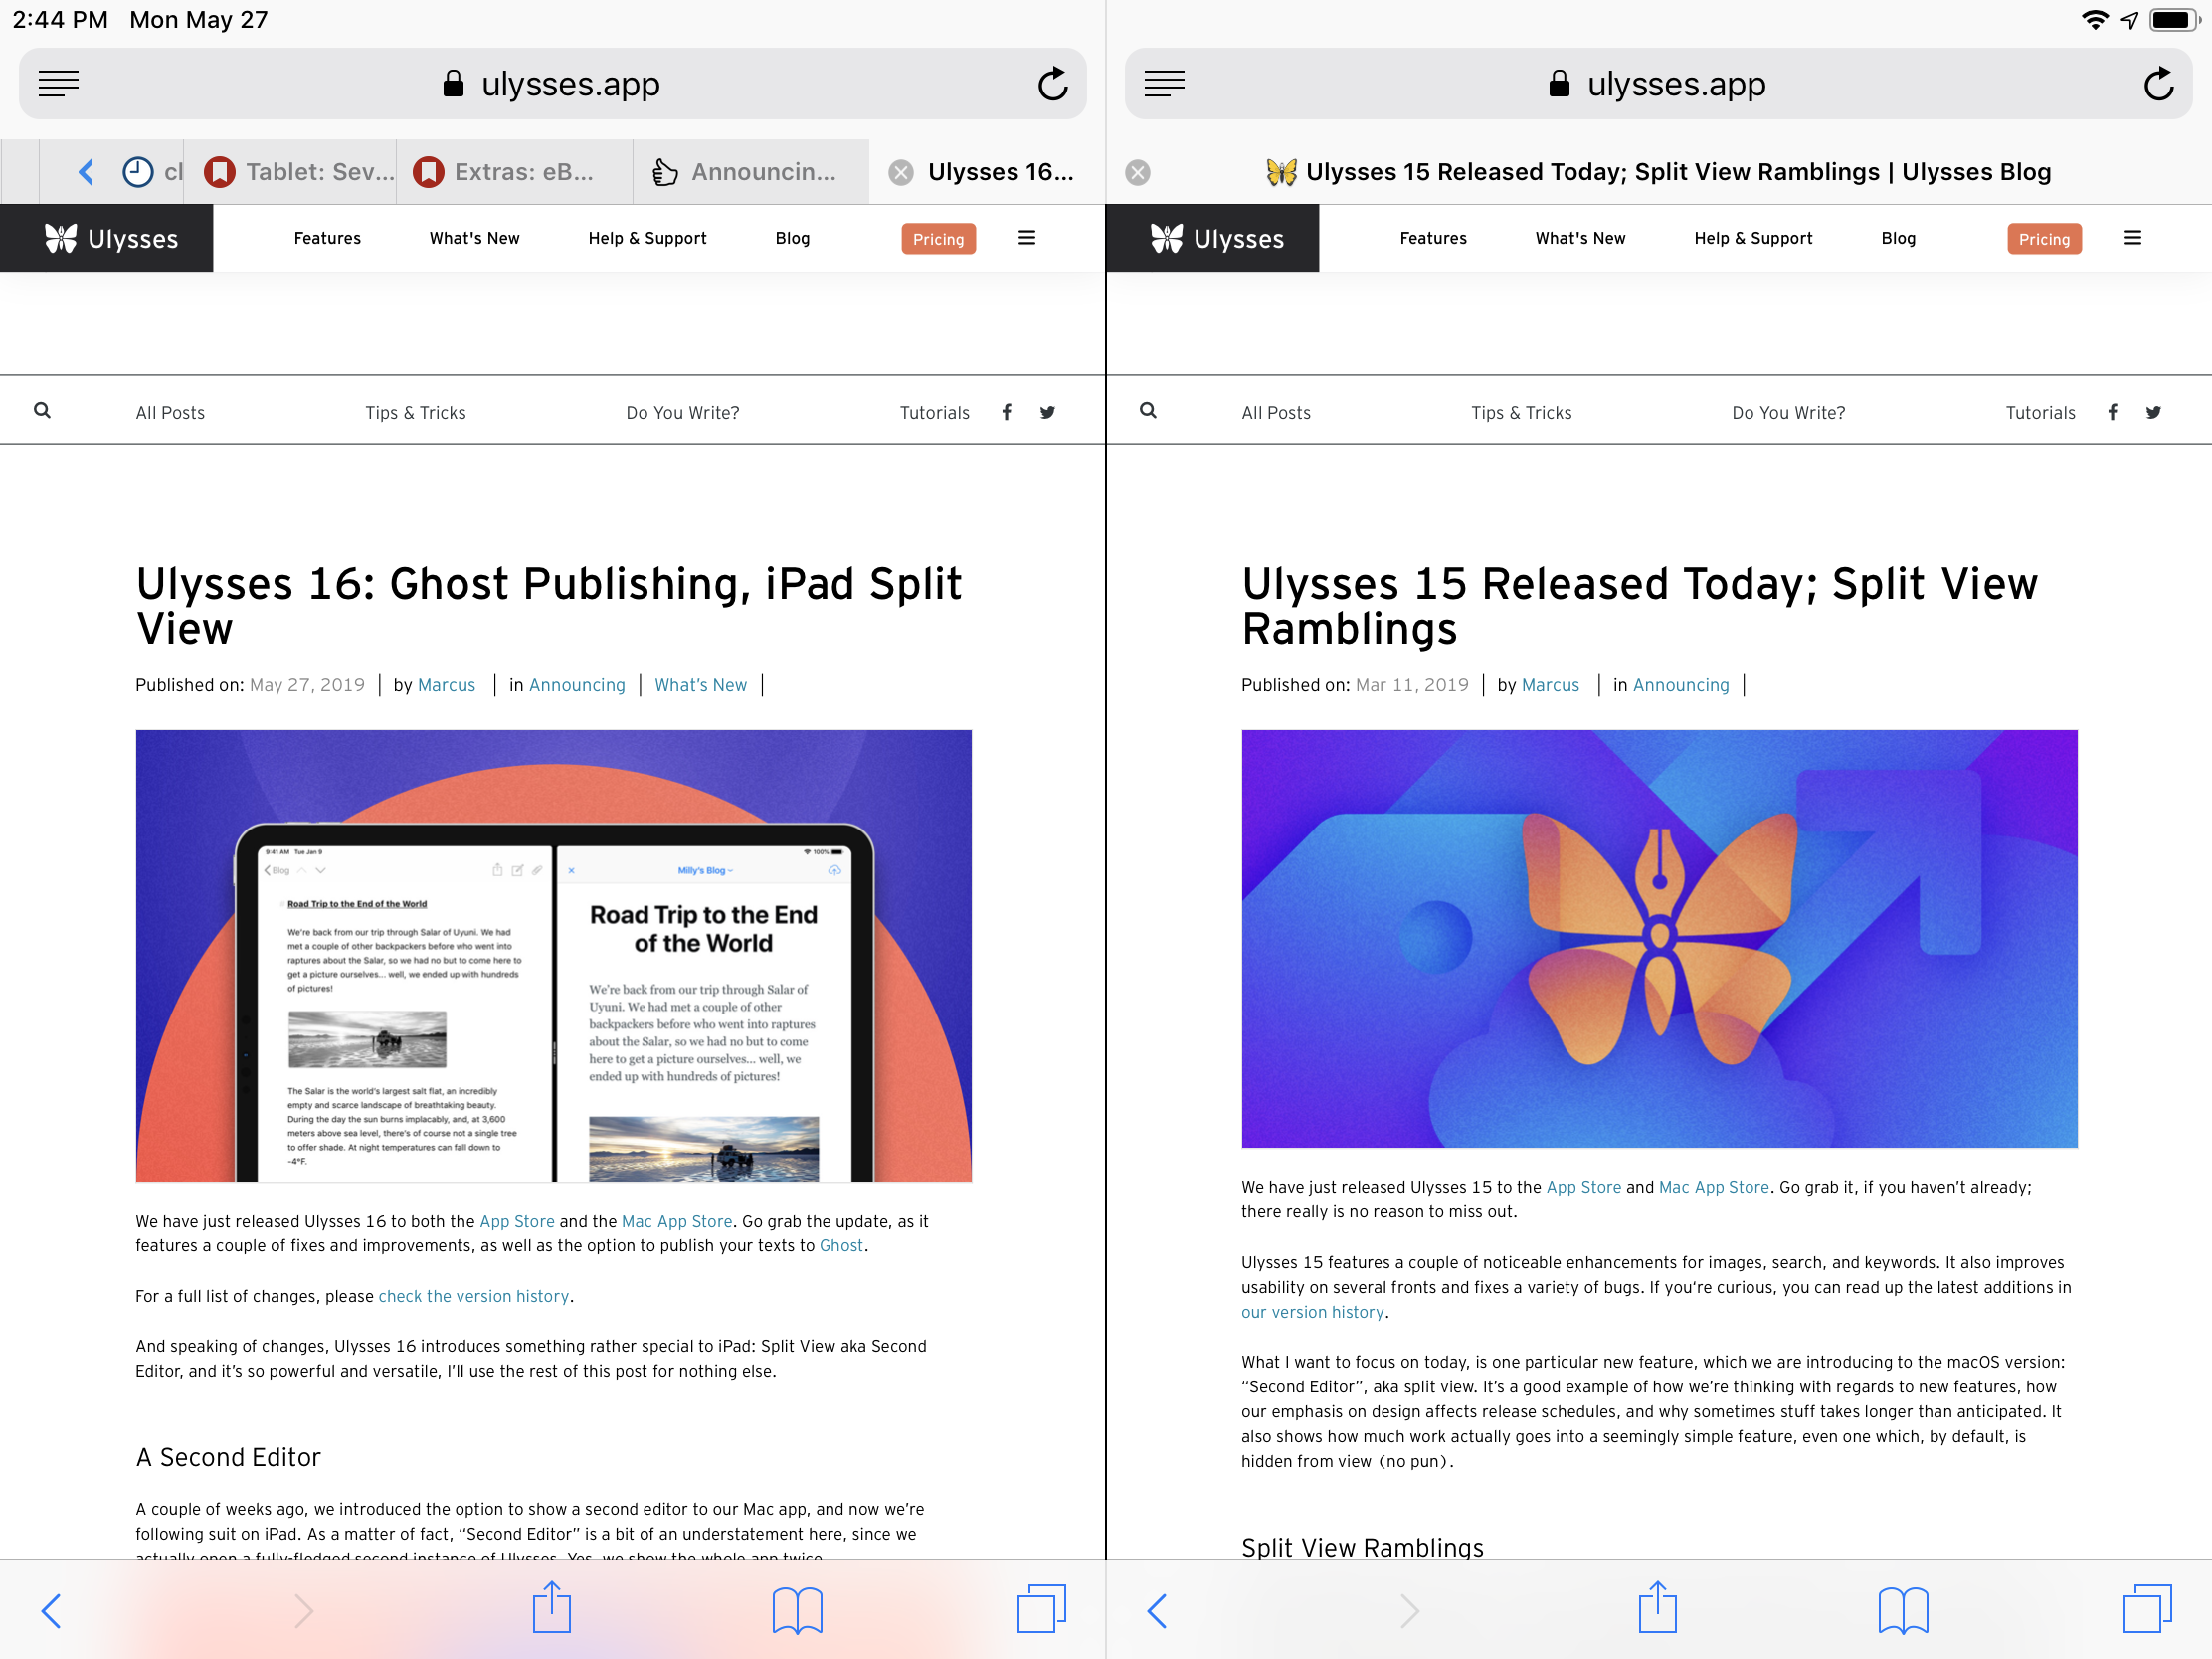 Safari's rudimentary in-app Split View.